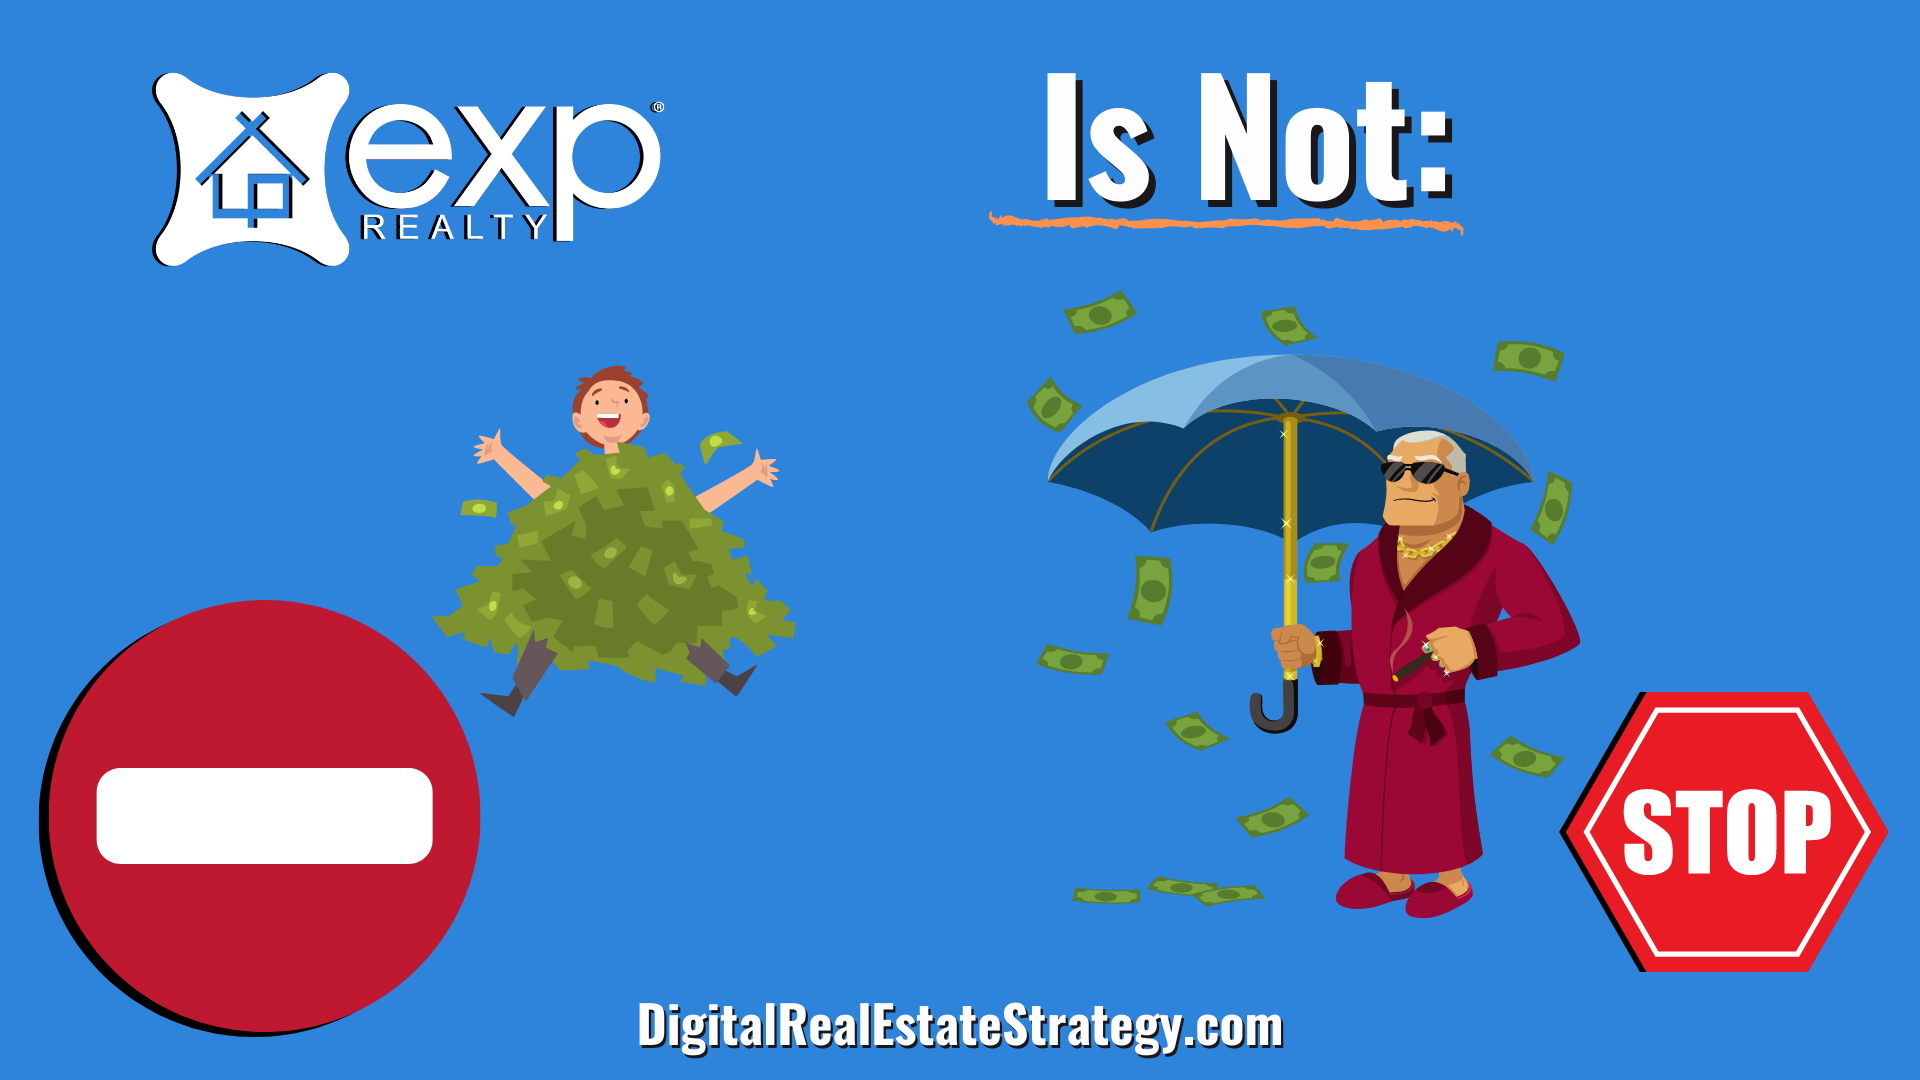 eXp Realty Review - eXp Realty Is Not - Jerome Lewis - eXp Realty Stock Awards - Digital Real Estate Strategy